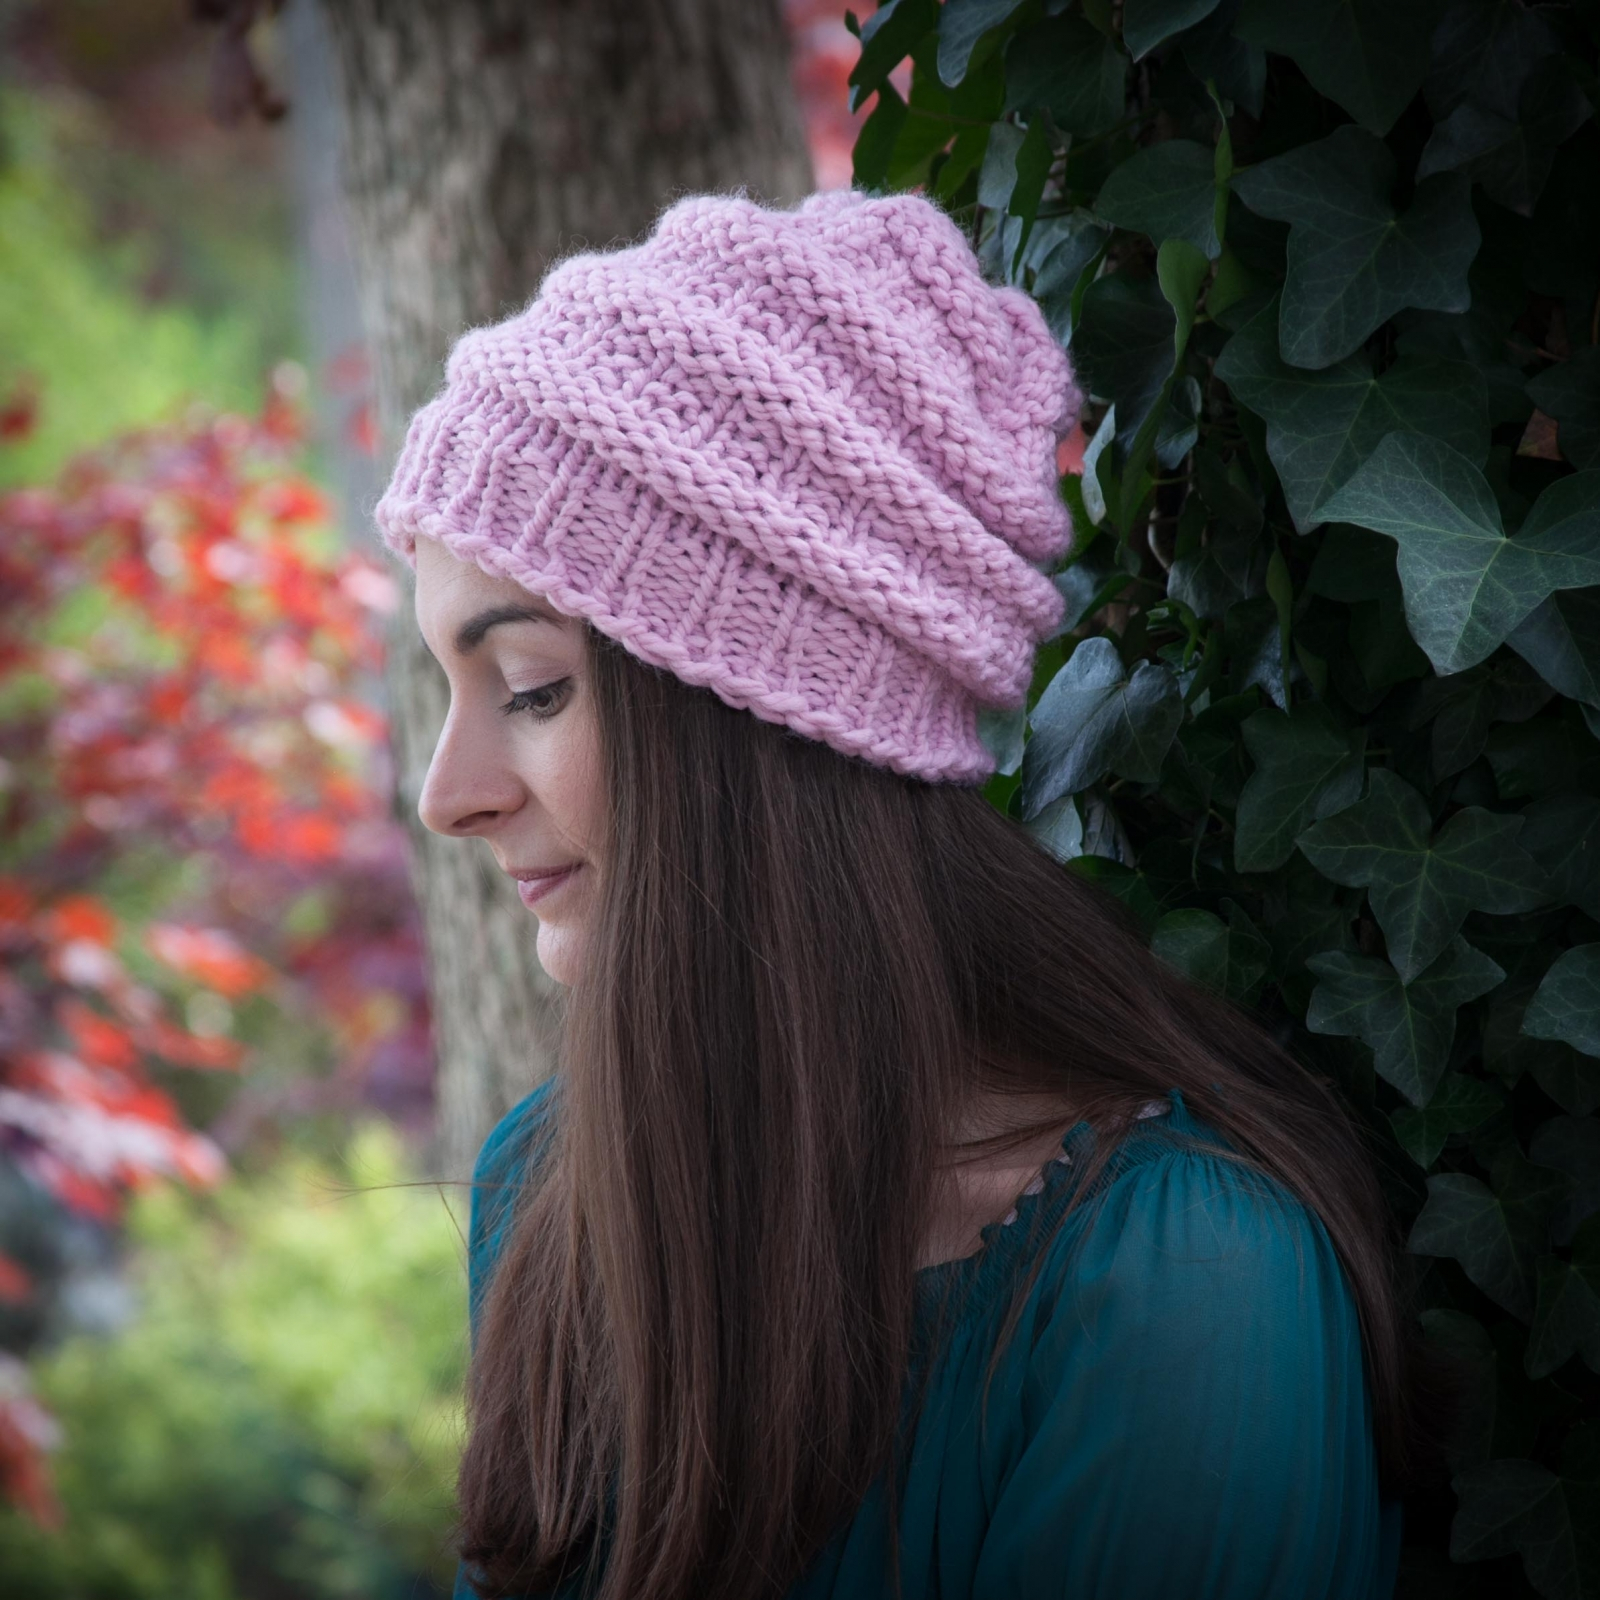 Round Loom Knitting Patterns Download Loom Knit Hat Pattern Slouch Hat Beanie Textured Bulky Chunky Knit Hat Pdf Pattern Download